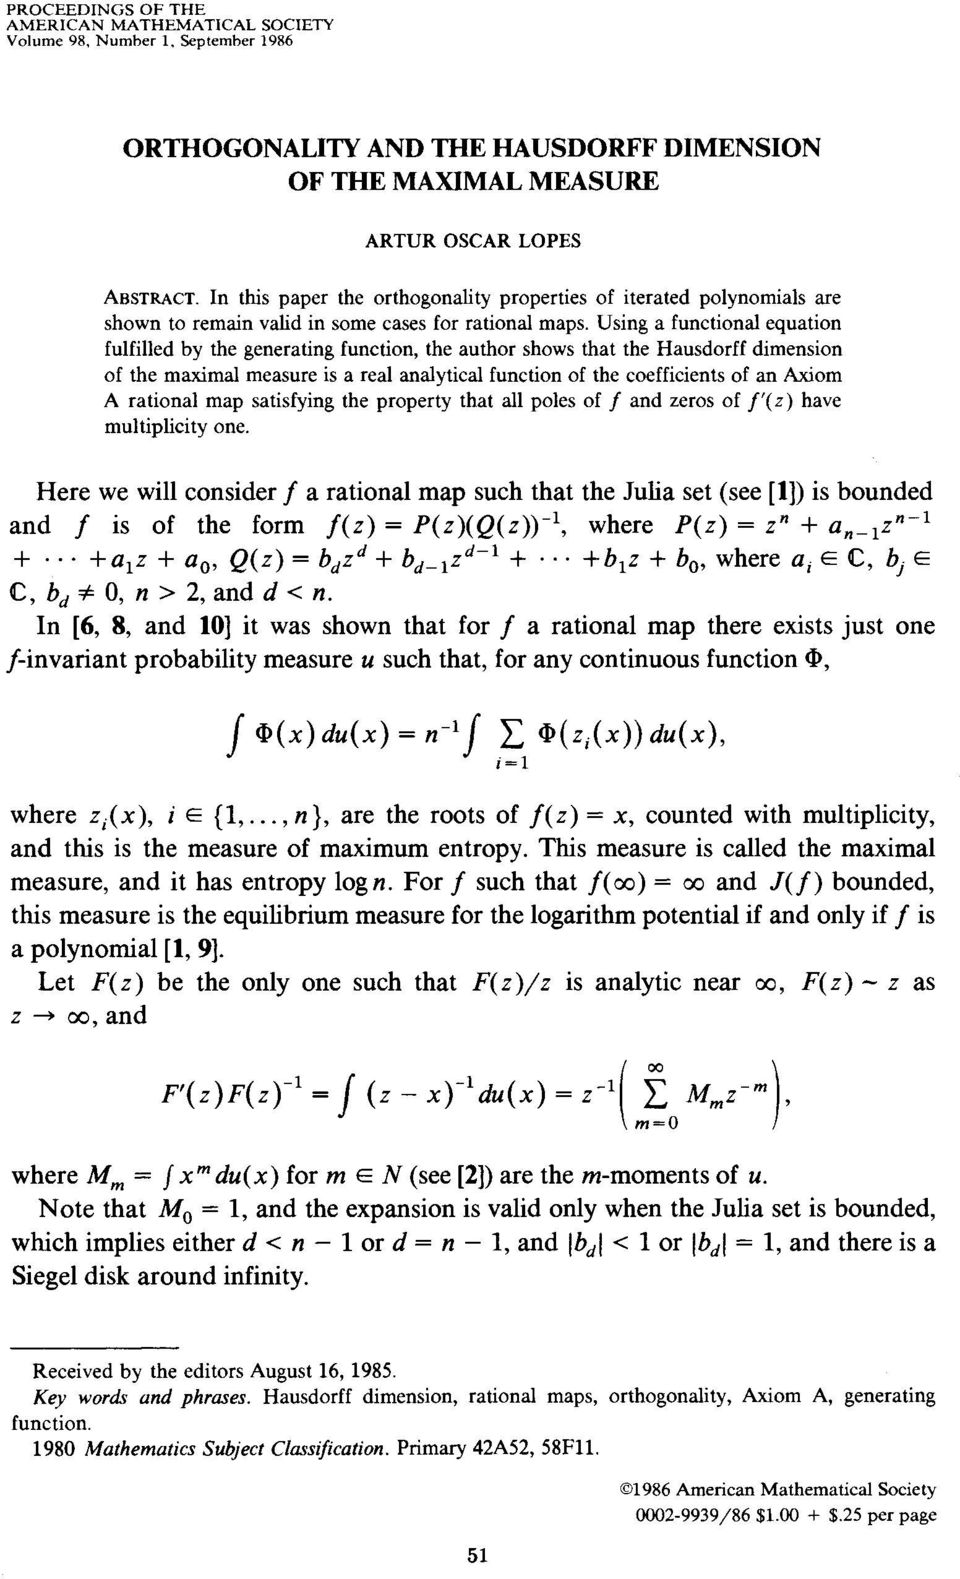 Using a functional equation fulfilled by the generating function, the author shows that the Hausdorff dimension of the maximal measure is a real analytical function of the coefficients of an Axiom A